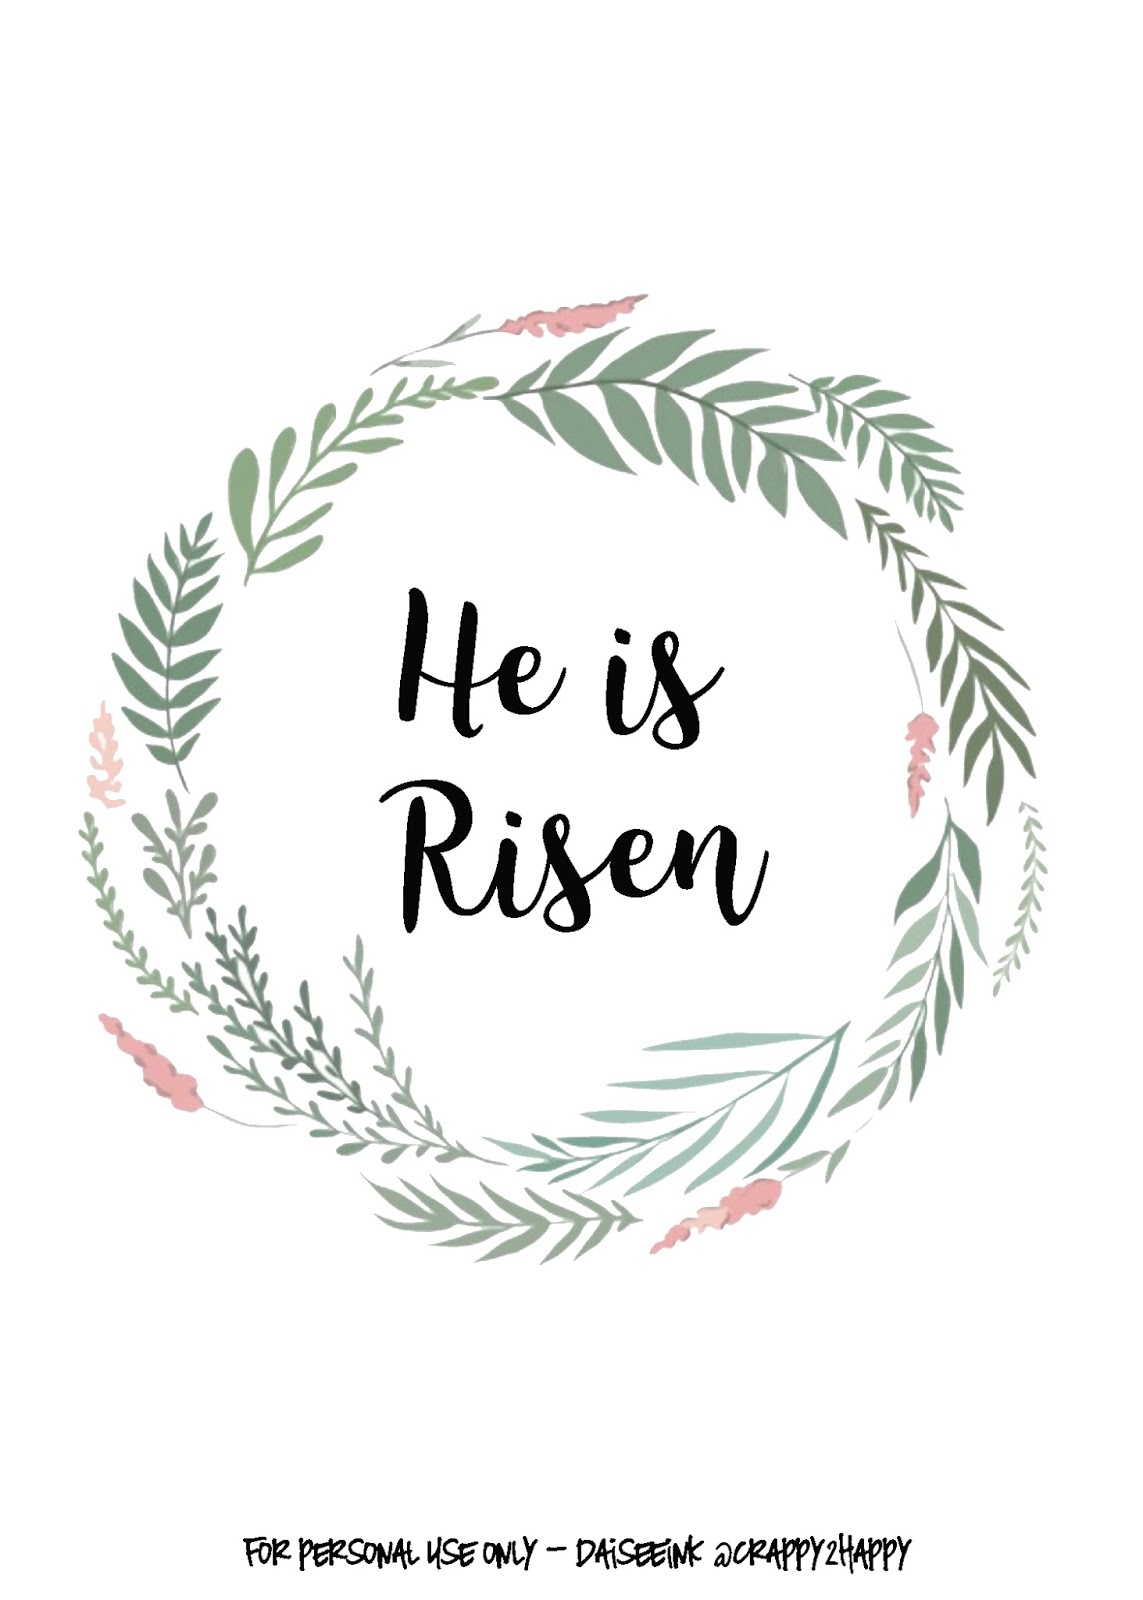 It's just an image of Gutsy He is Risen Printable